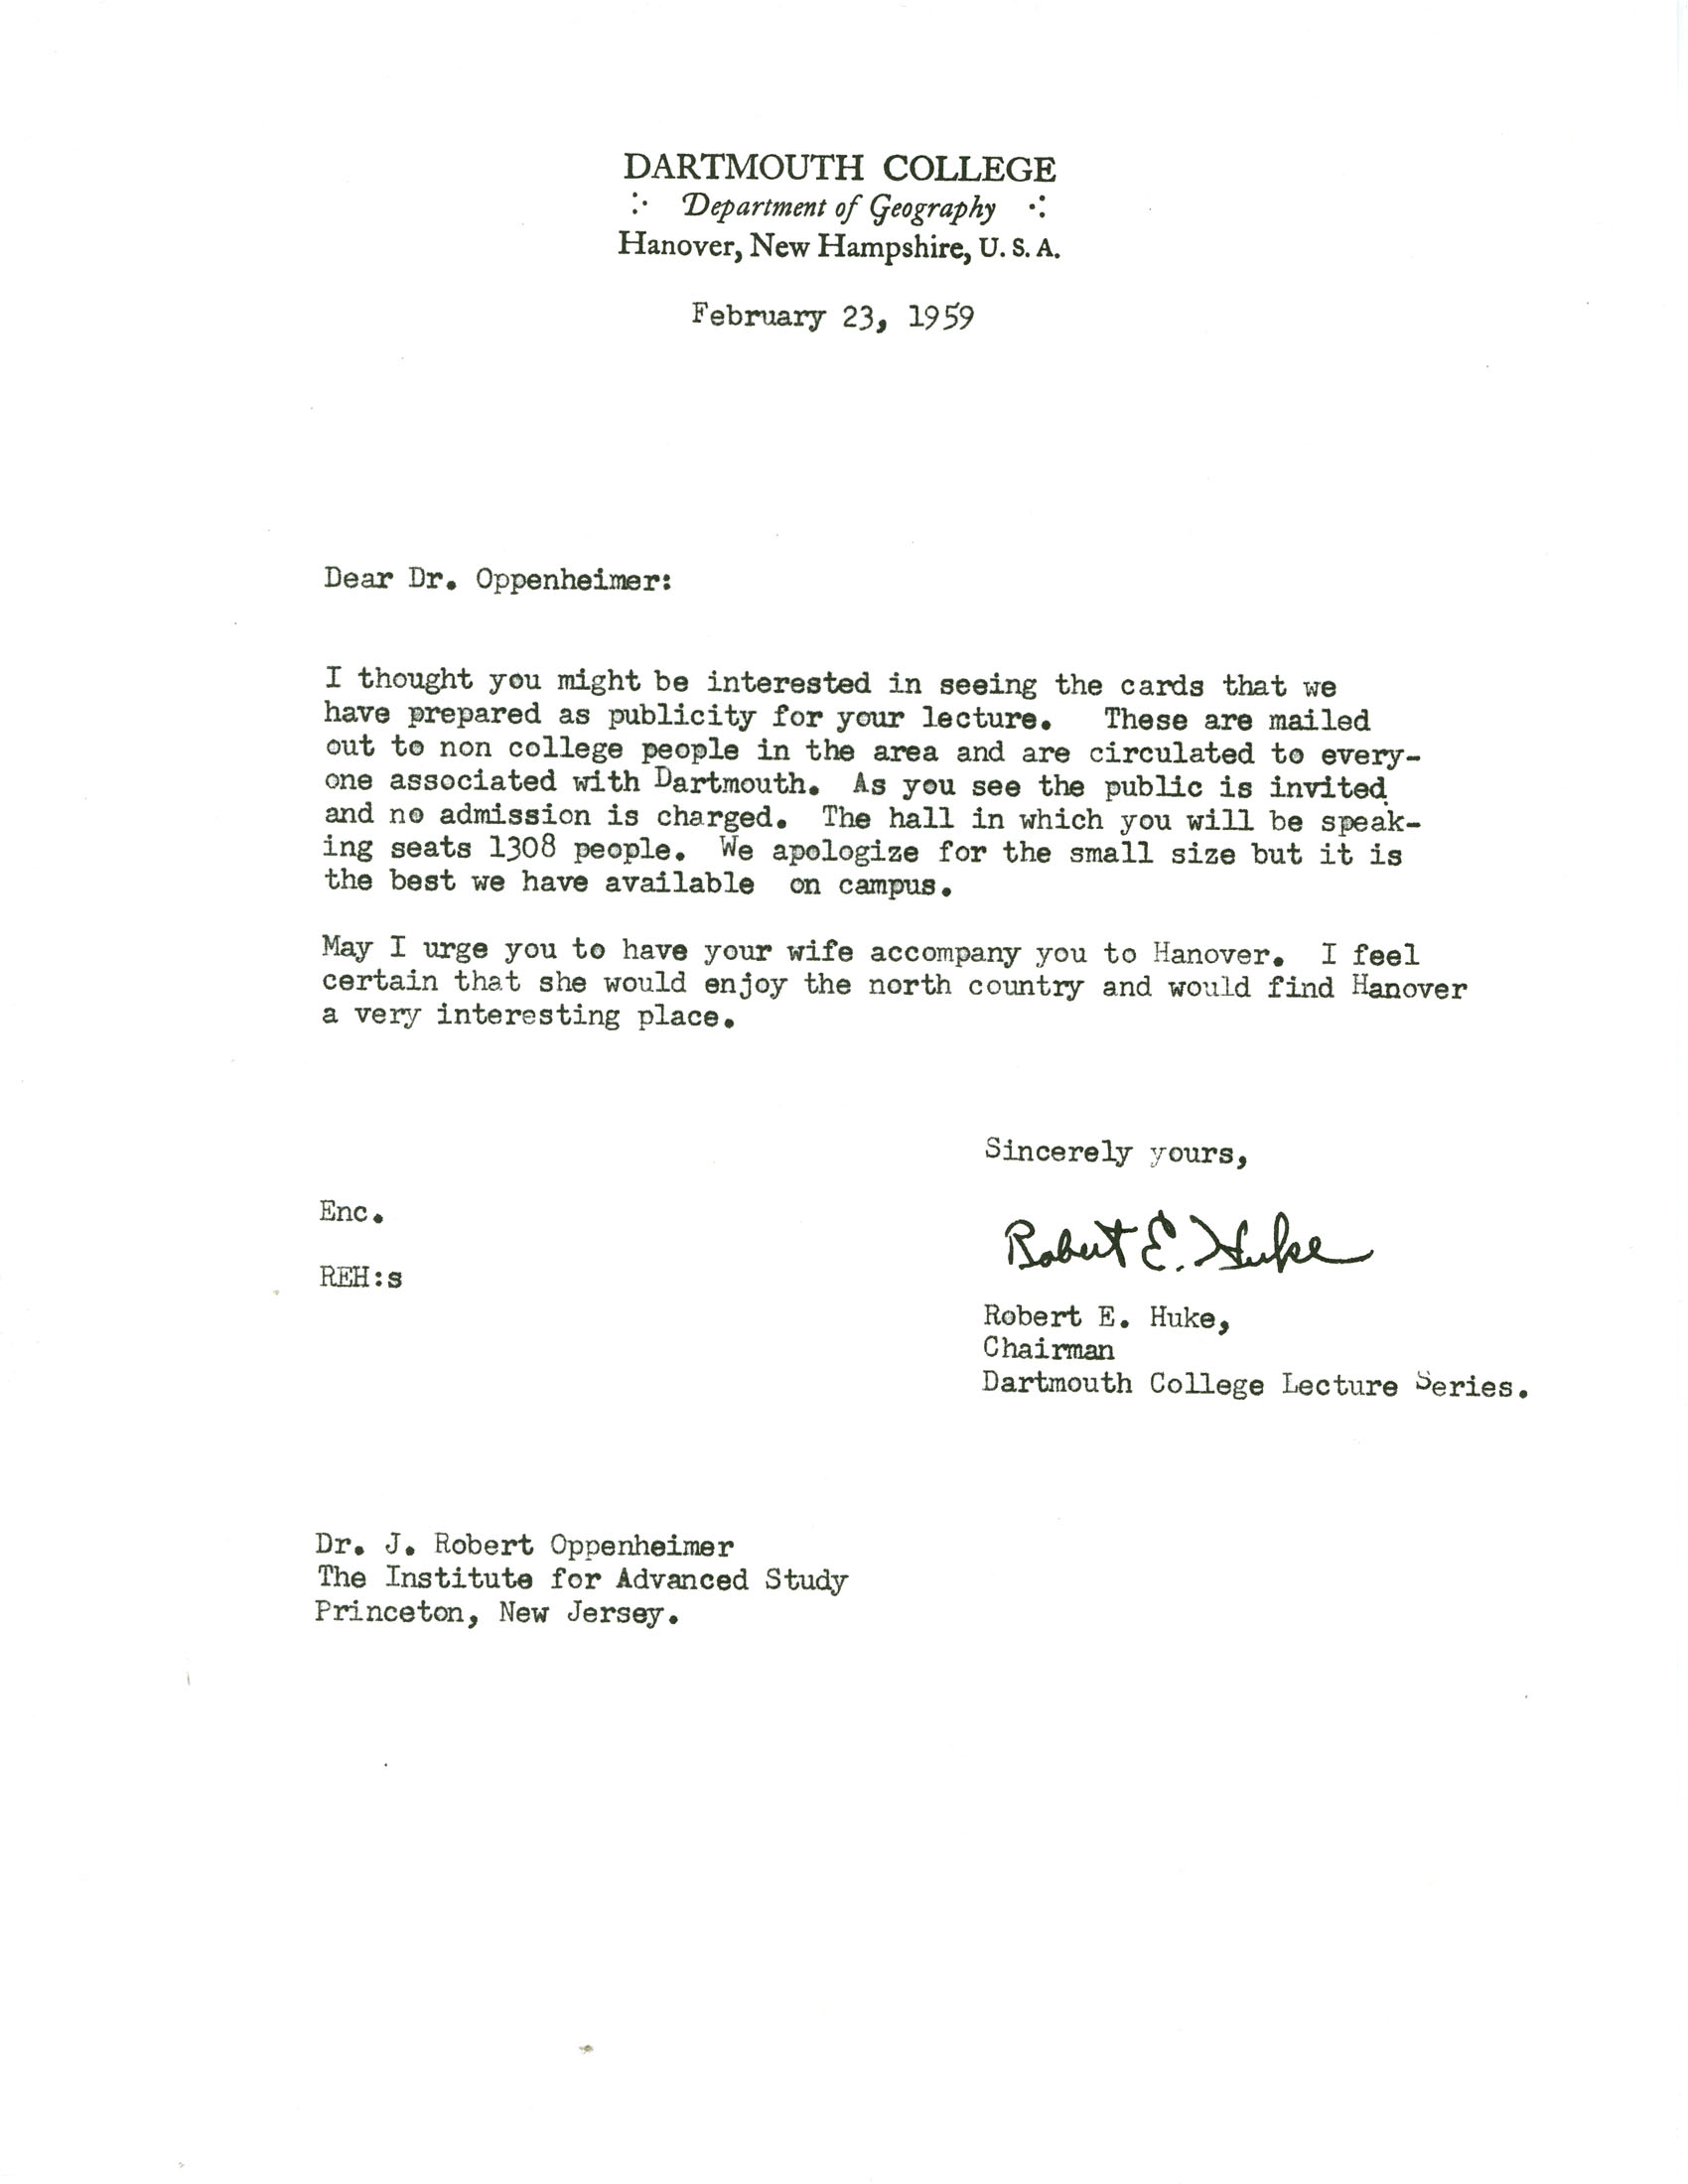 Letter From Robert Huke Dartmouth College To Robert Oppenheimer